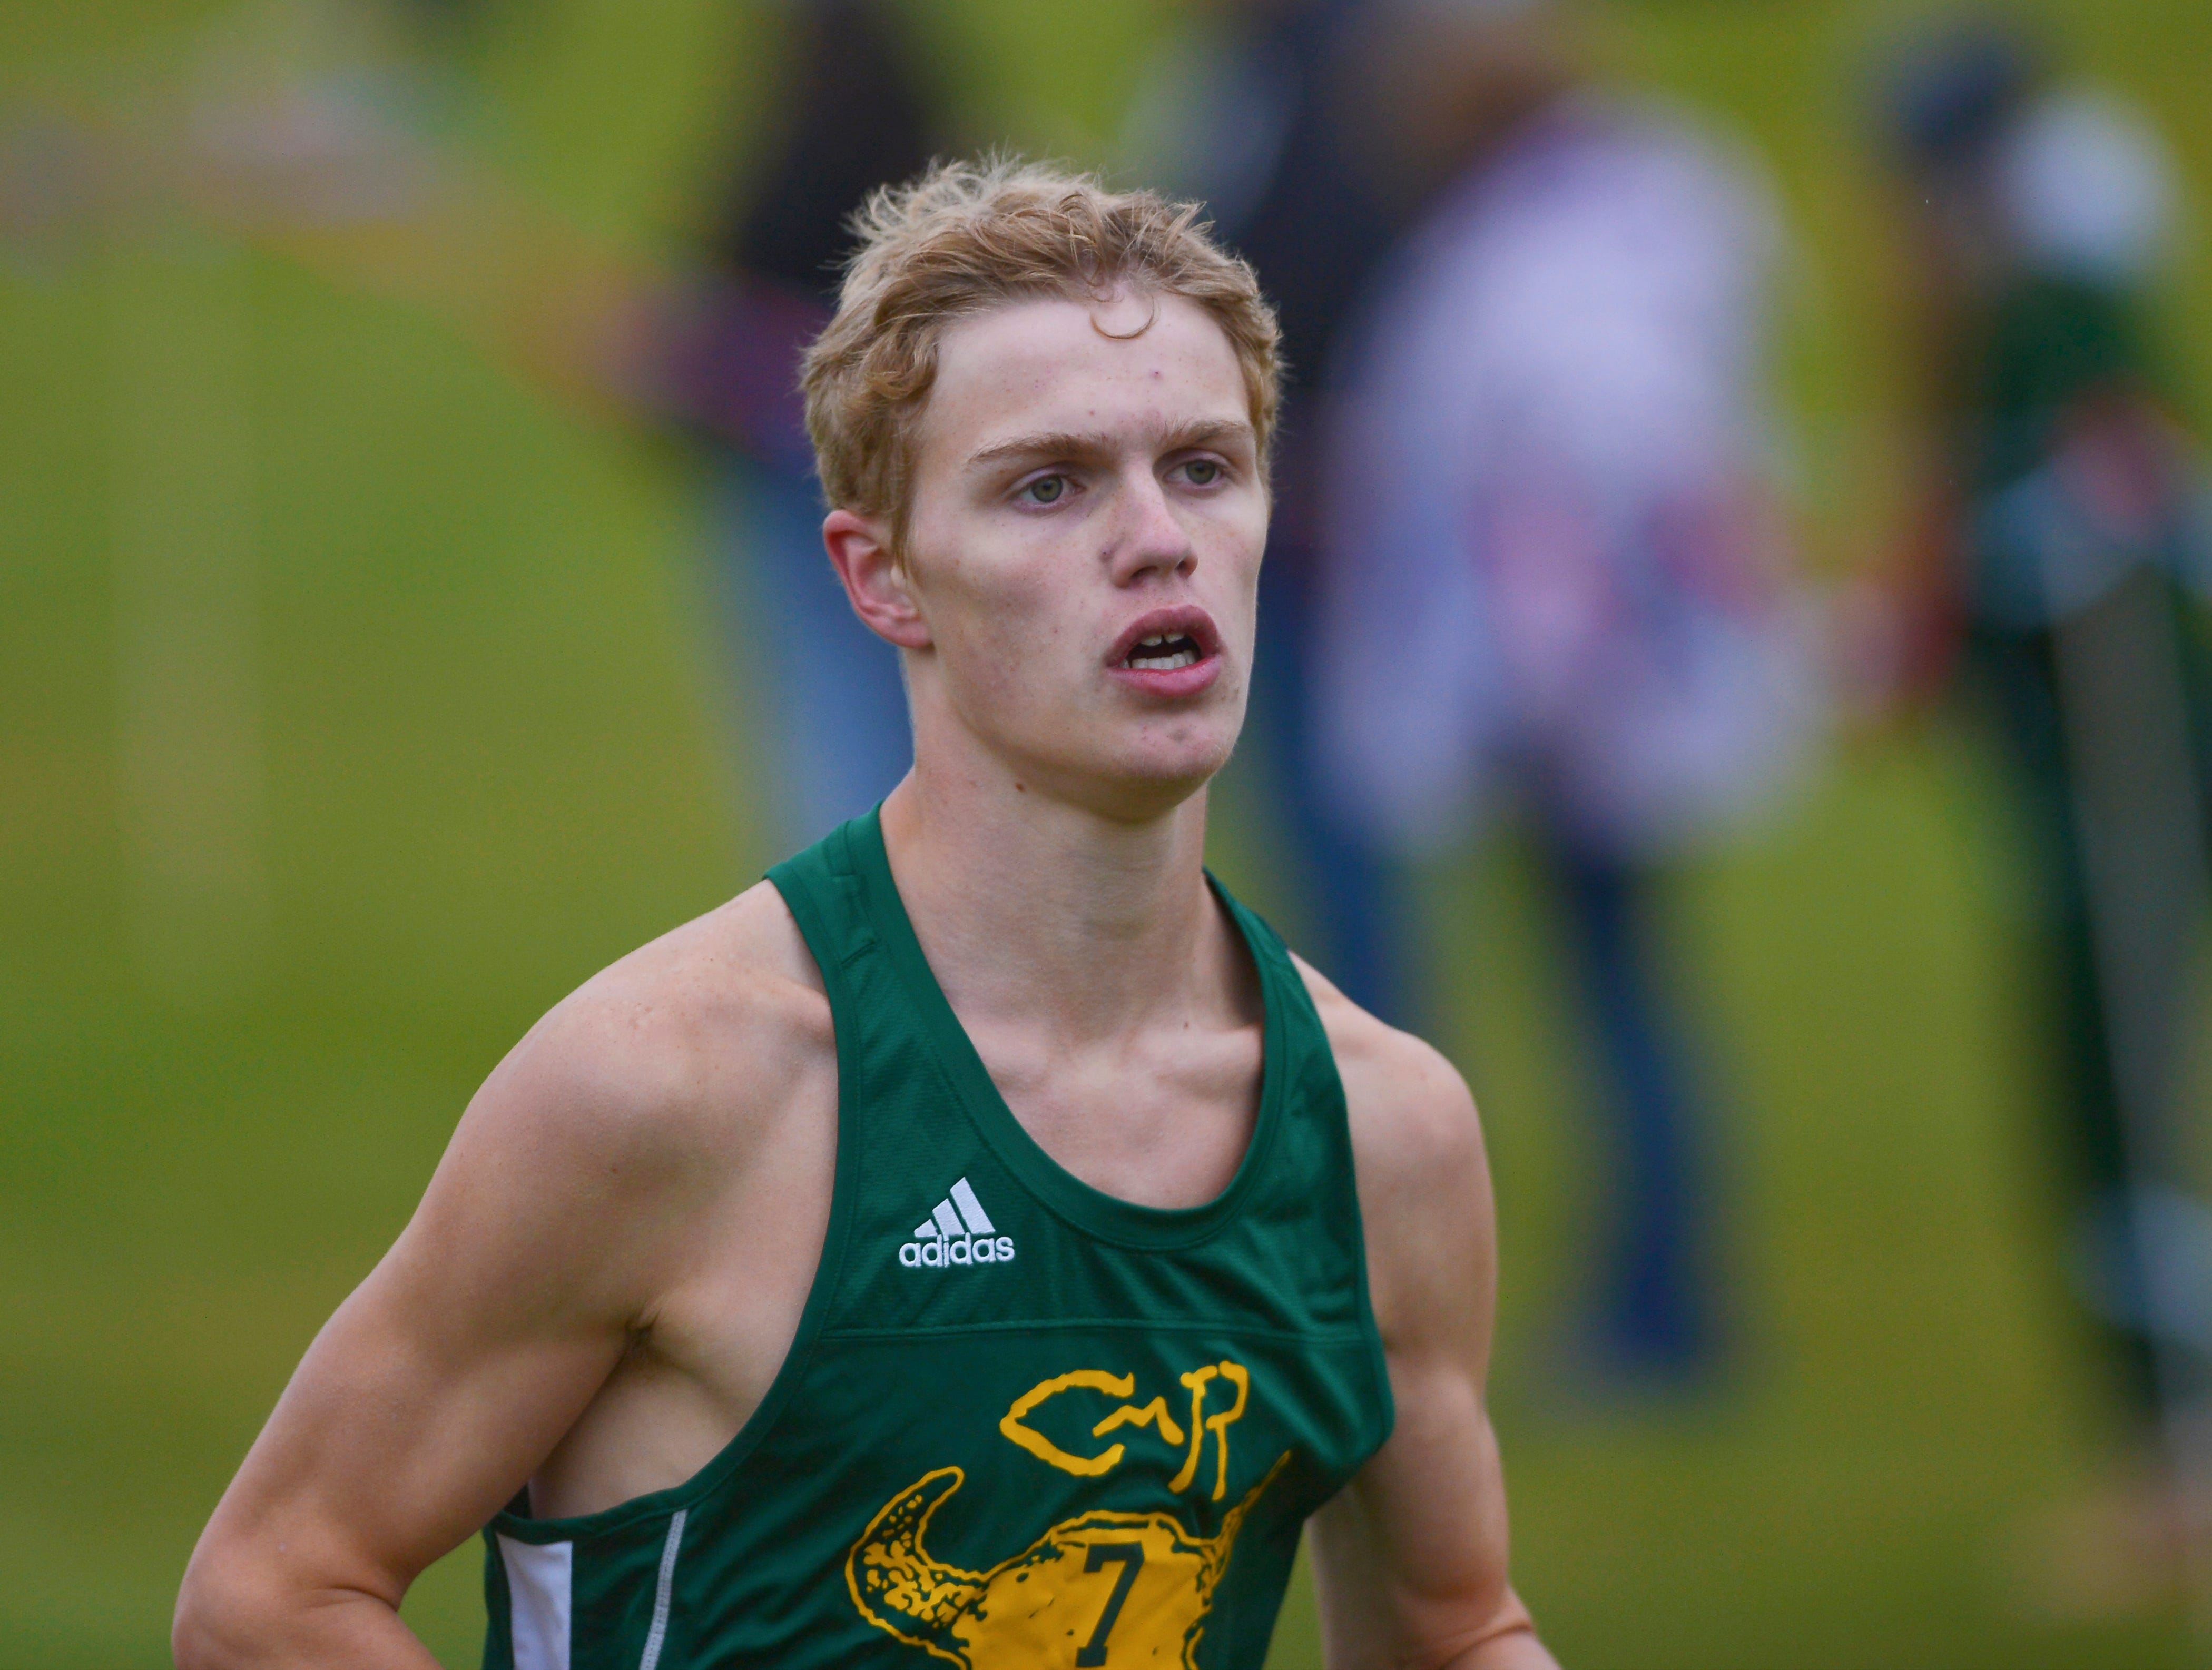 CMR's Gordon Gentry finishes first in the boys race during the crosstown cross country meet on Wednesday at Anaconda Hills Golf Course.